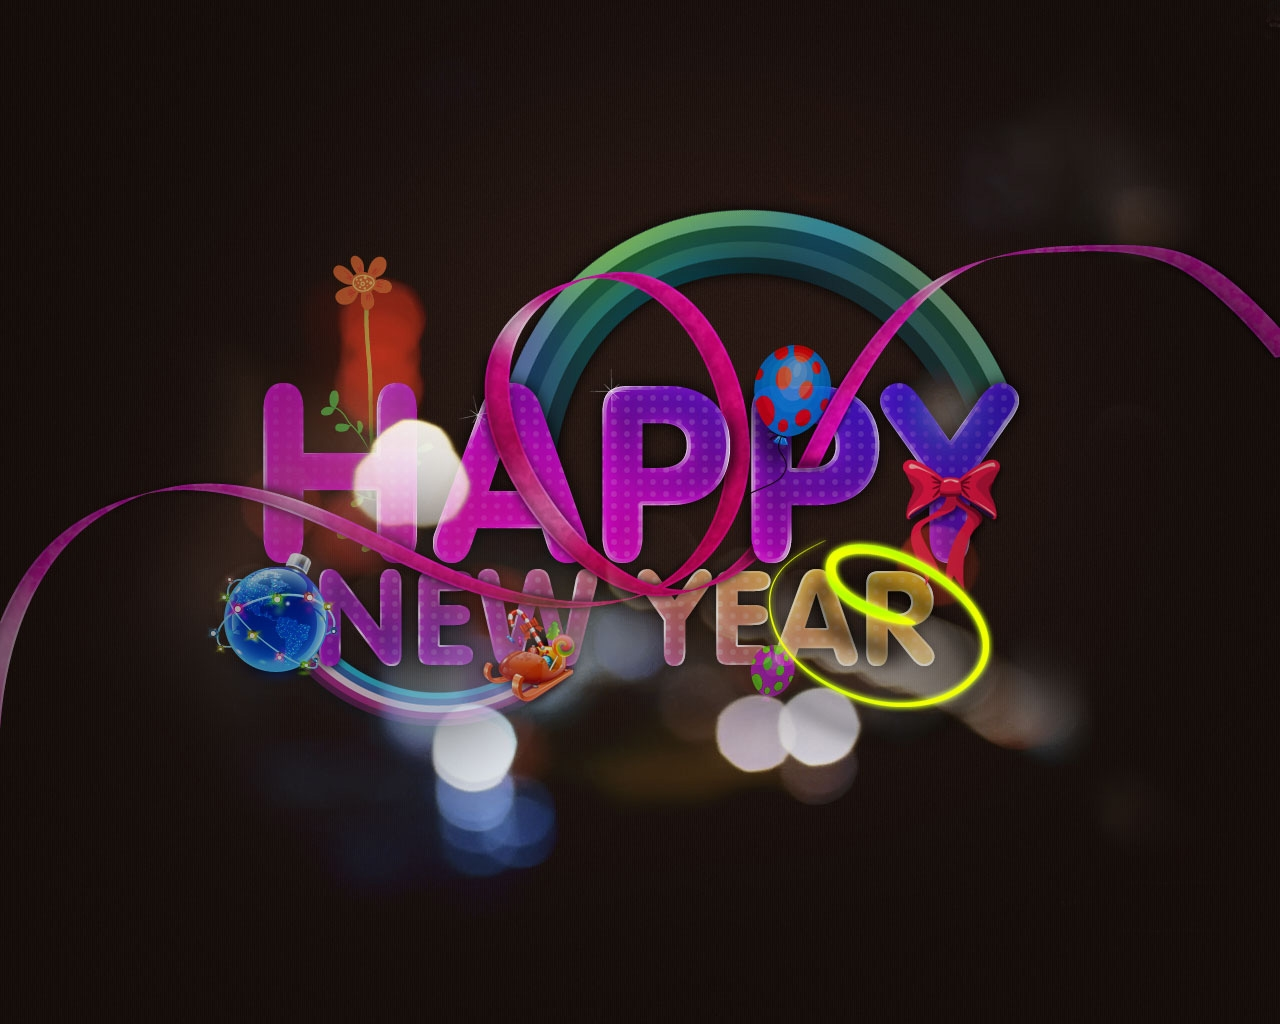 Most Beautiful Happy New Year Wishes Greetings Cards 1280x1024